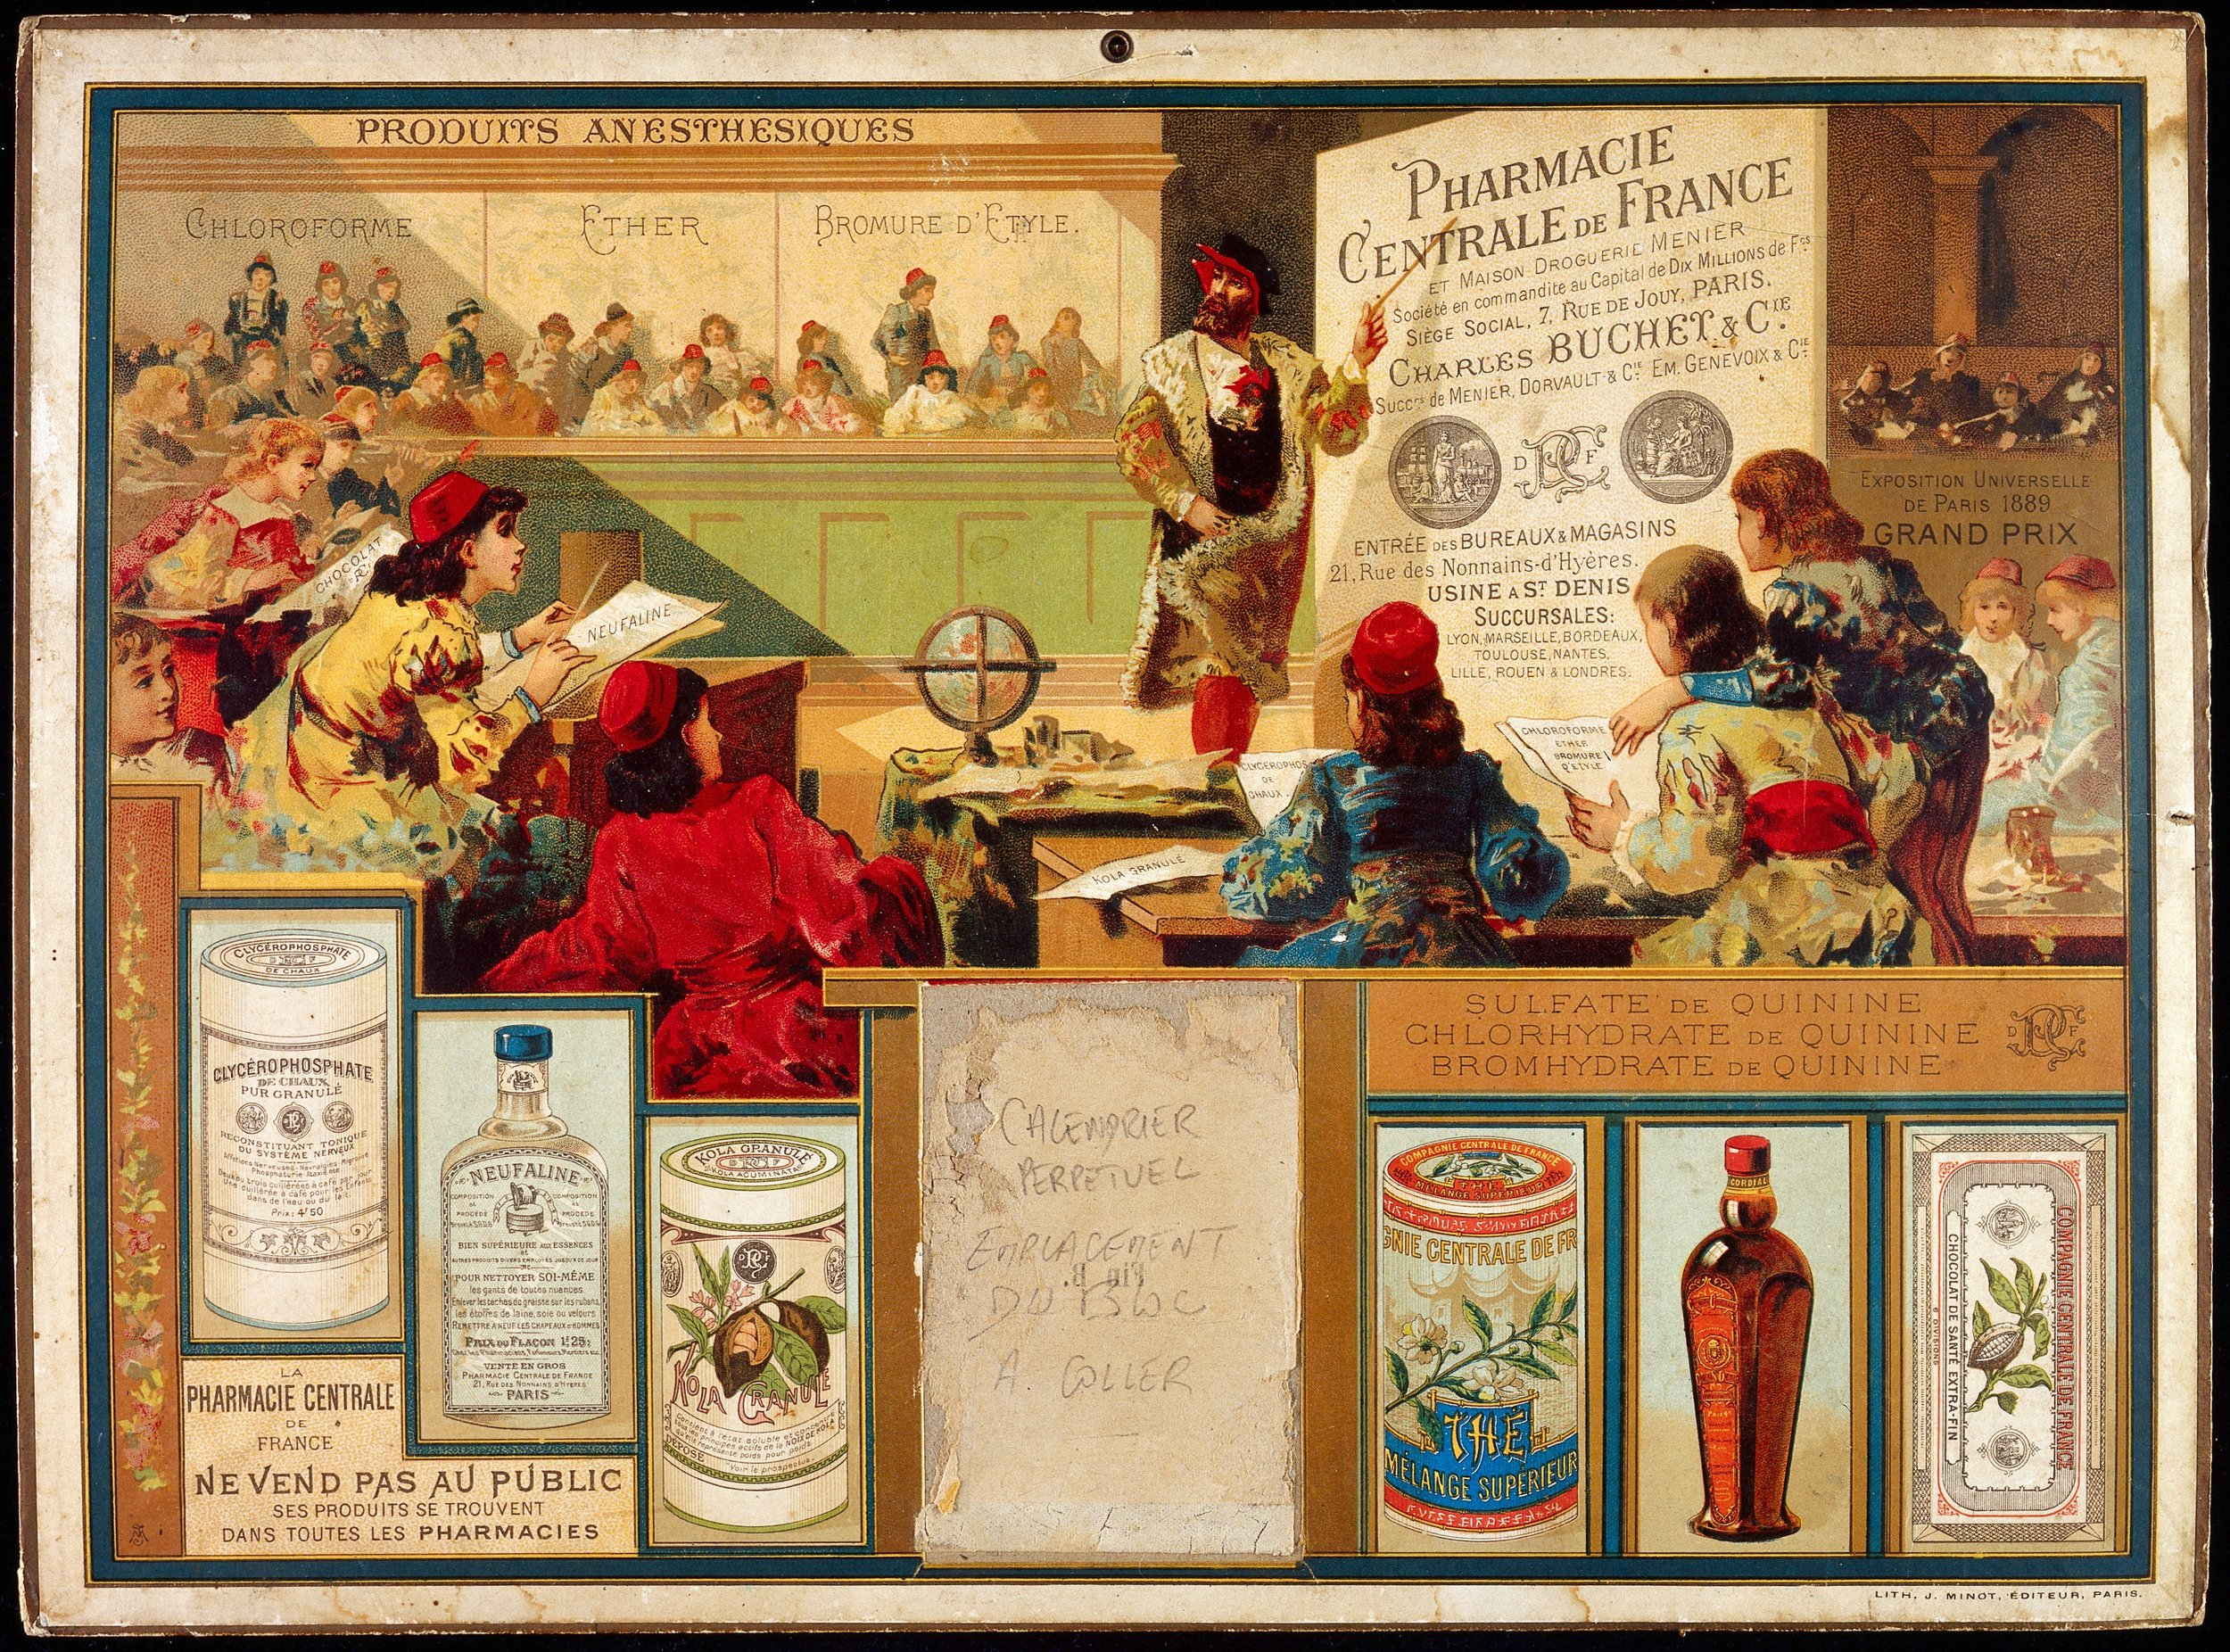 - Pharmacie Centrale de France et Maison Droguerie Menier. A professor teaching pharmacy to students in mid-16th century Paris; representing a calendar advertising products of the Pharmacie Centrale de France. Colour lithograph, after 1889. Credit: Wellcome Collection. CC BY